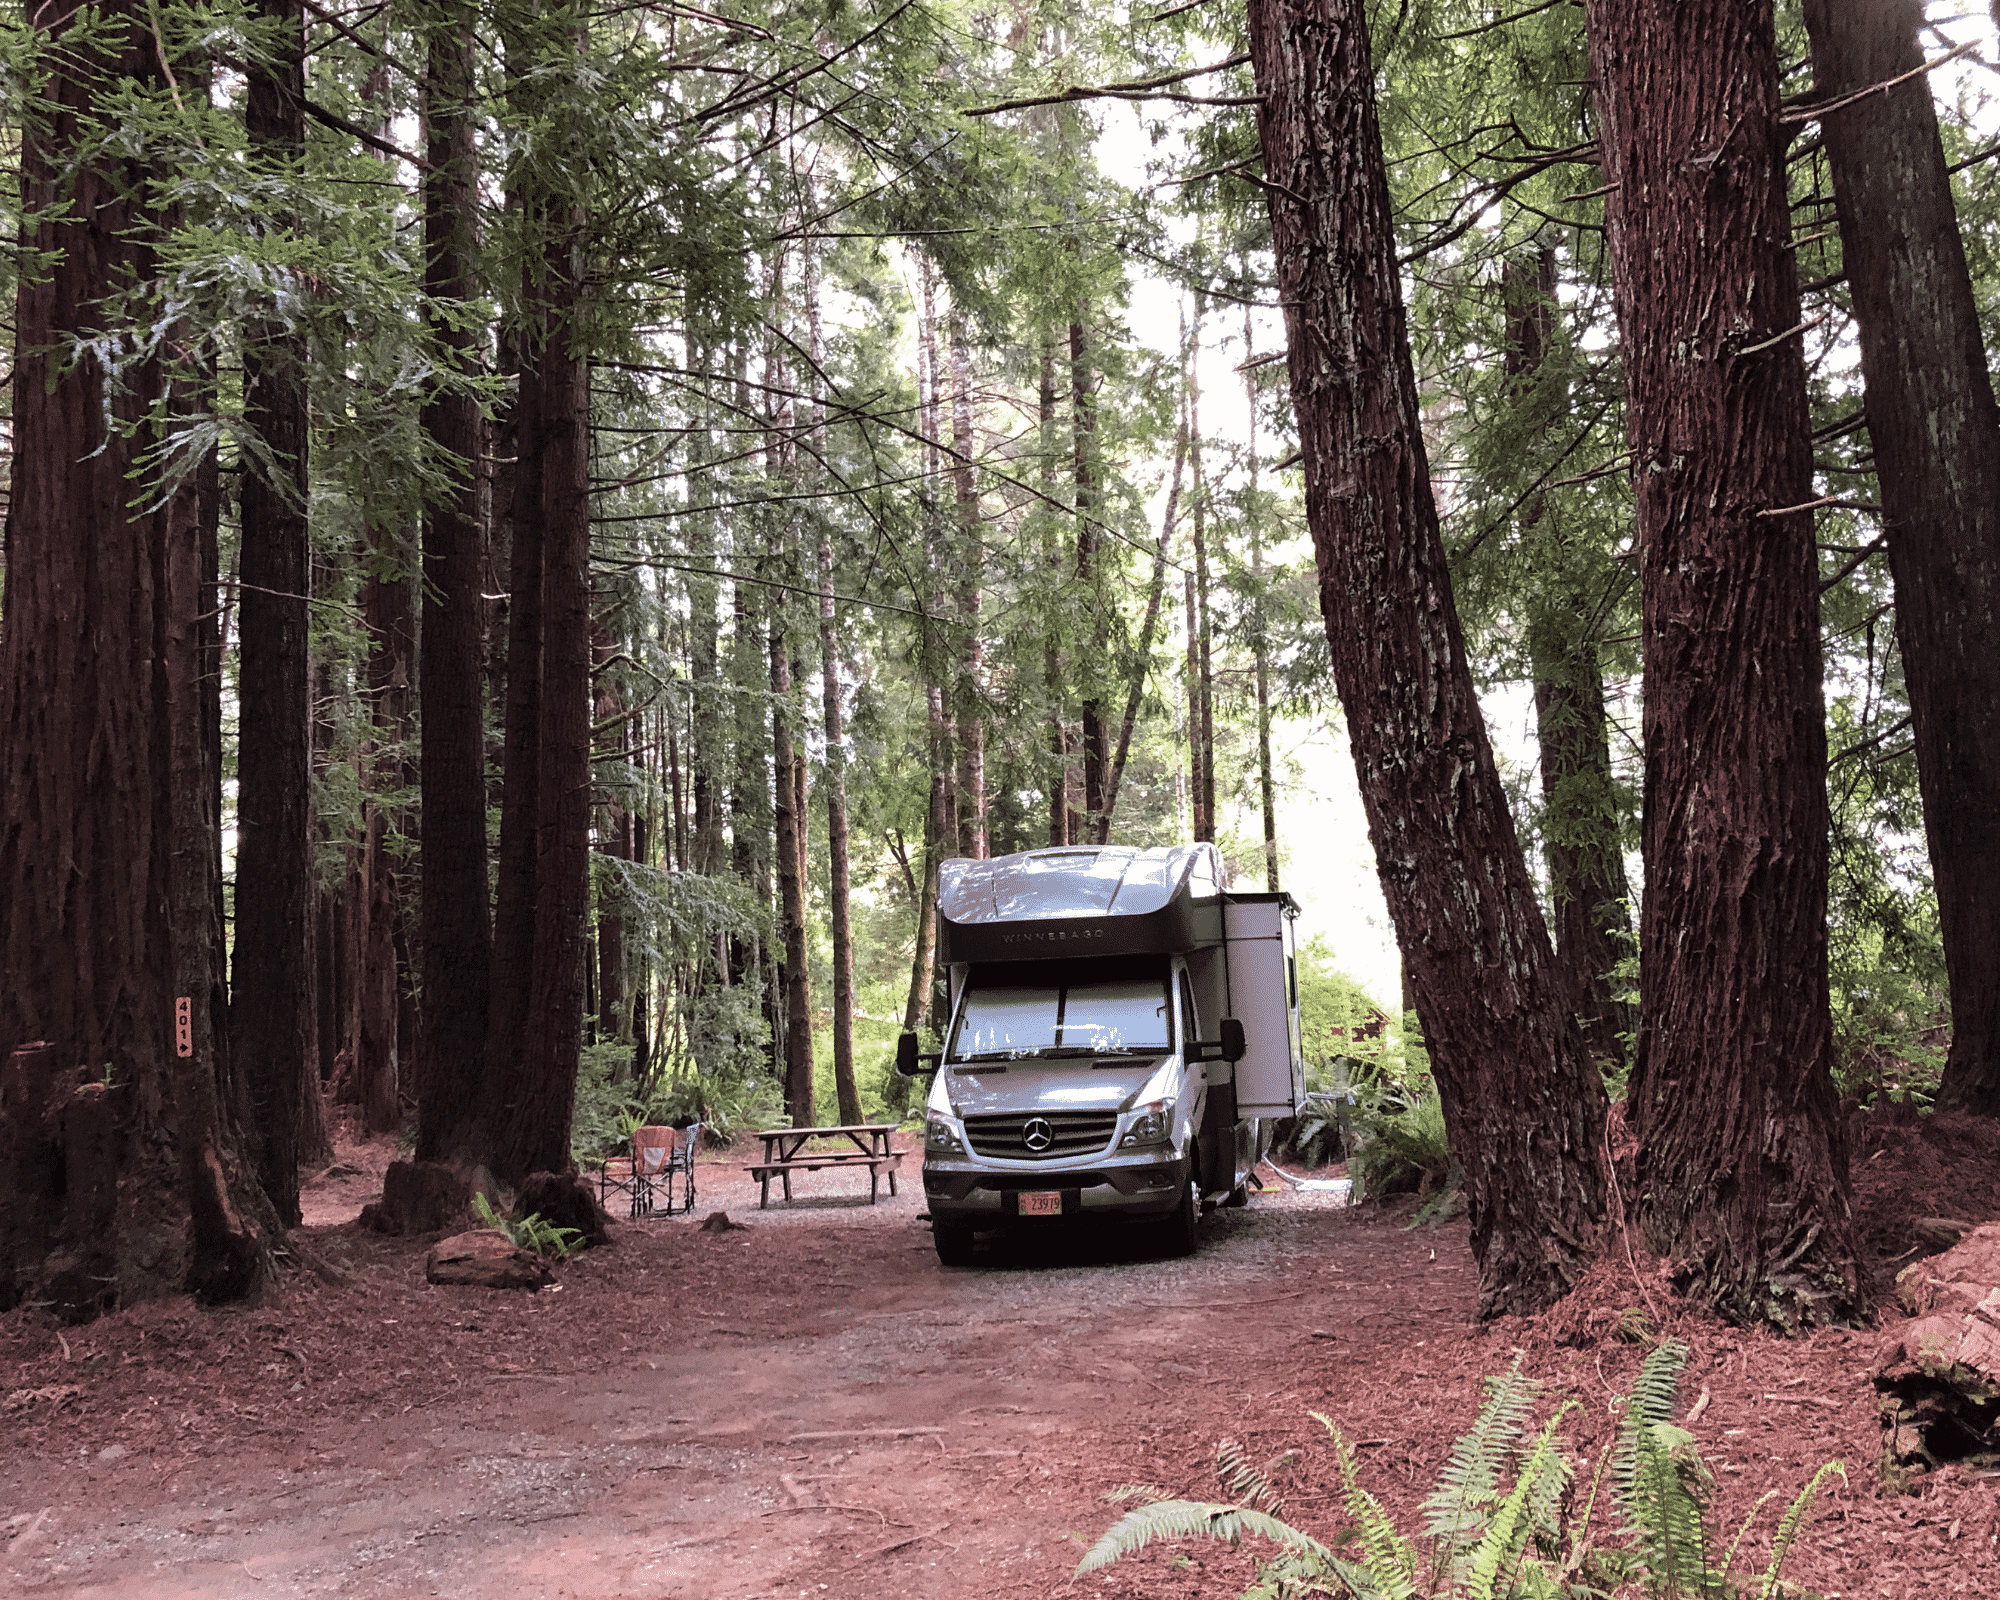 Camping in Redwoods National Park